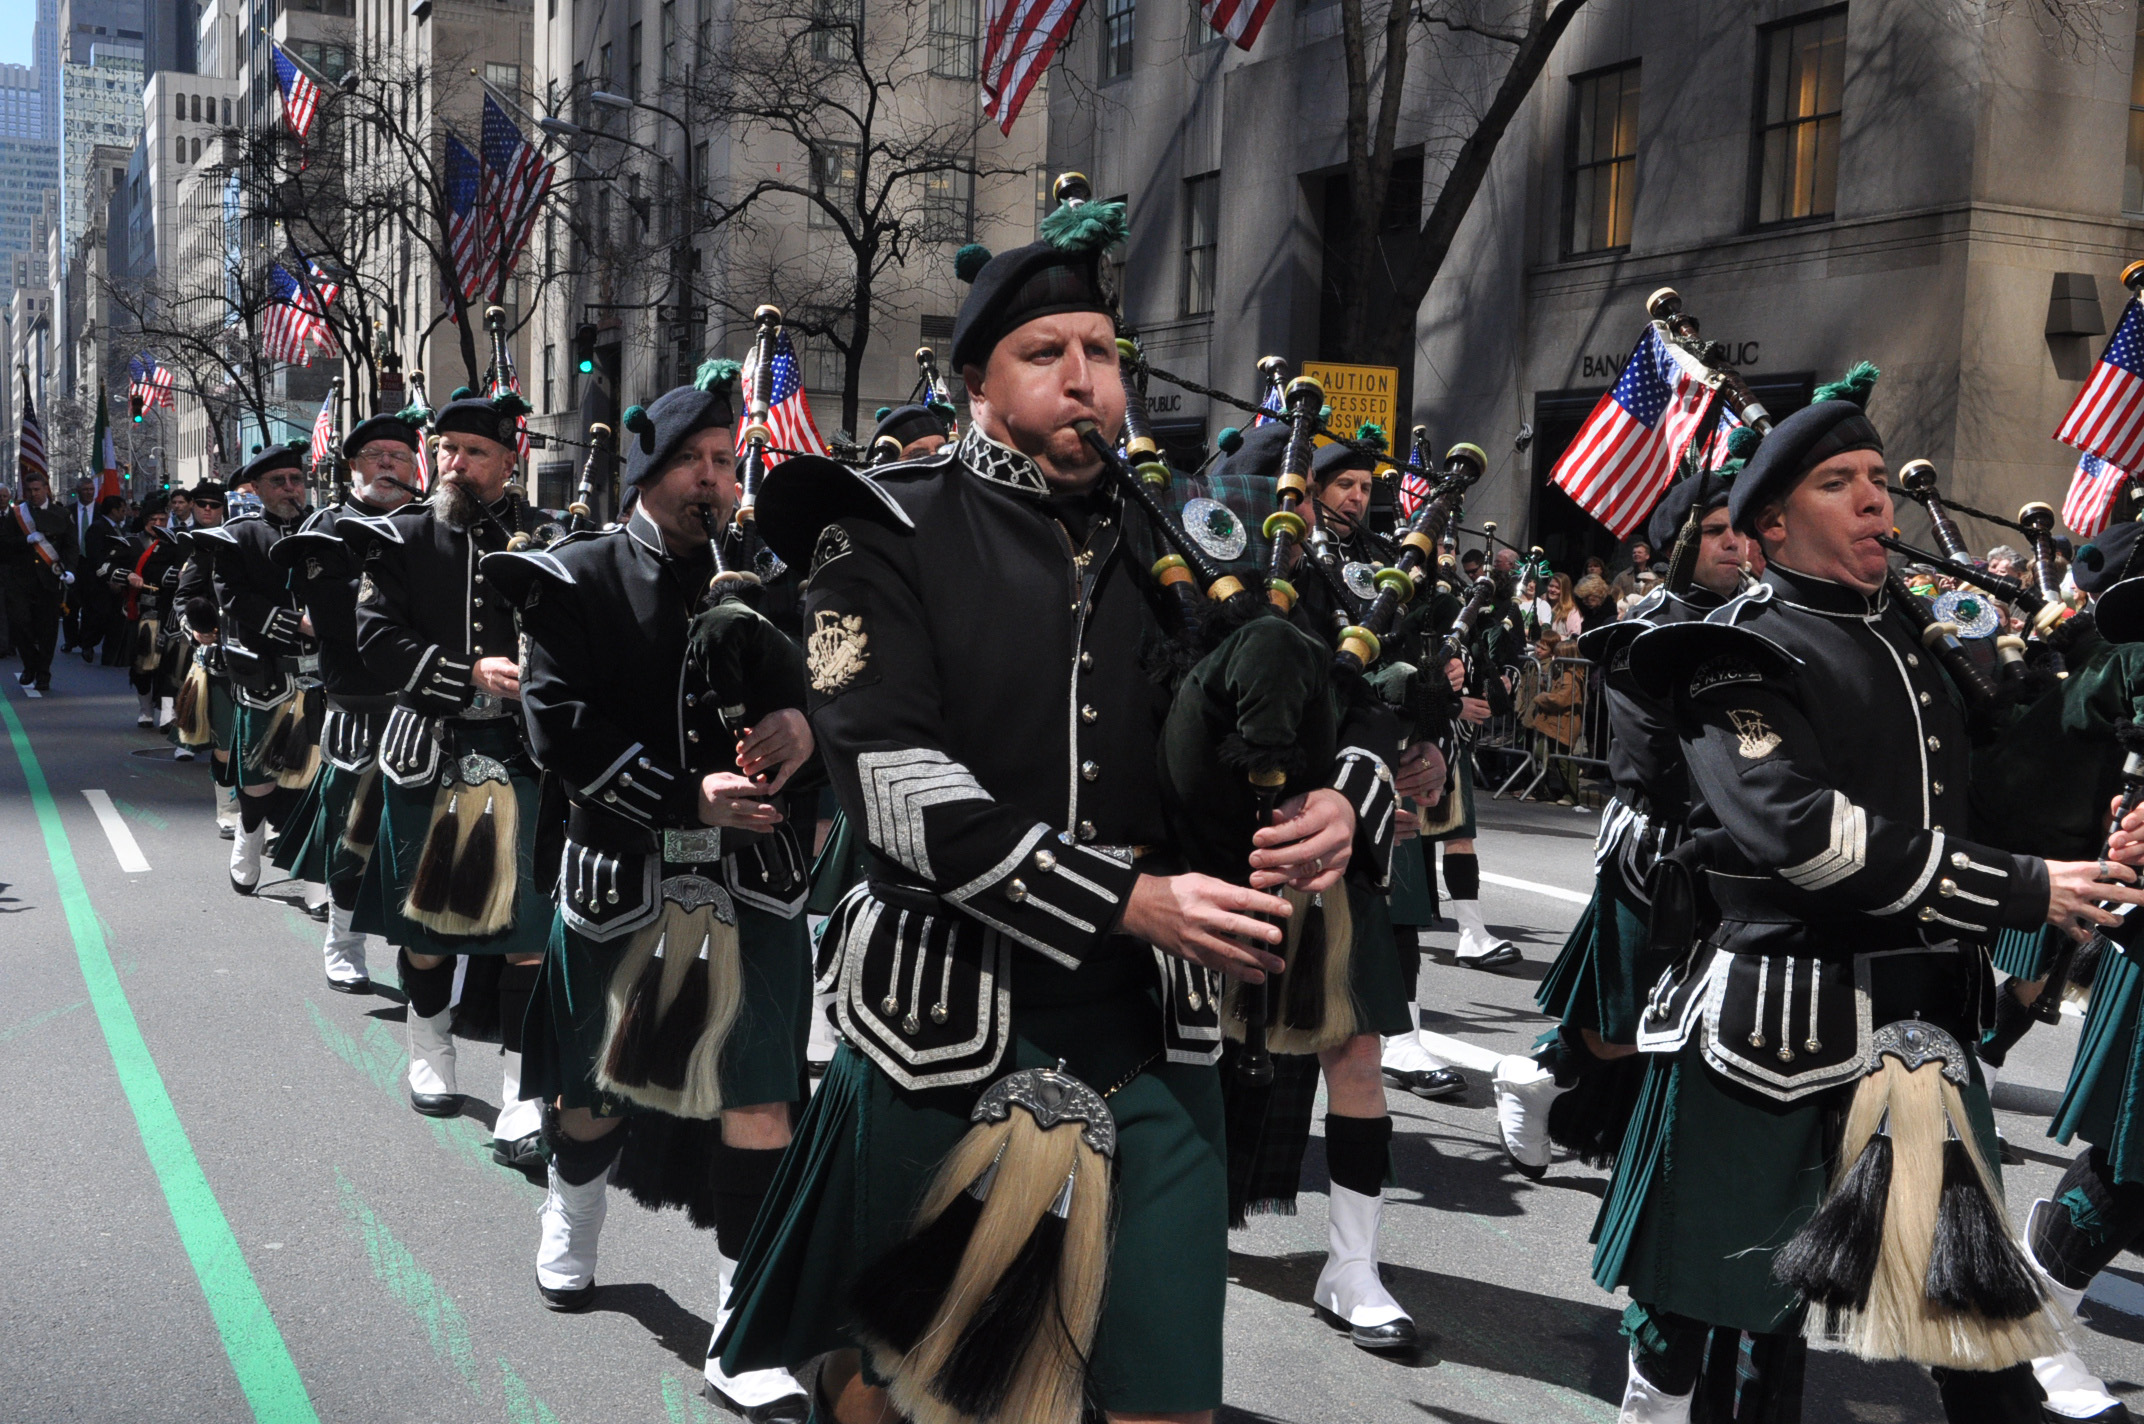 NYC St. Patrick's Day Parade. 2011 5th Ave.Photo: James Higgins